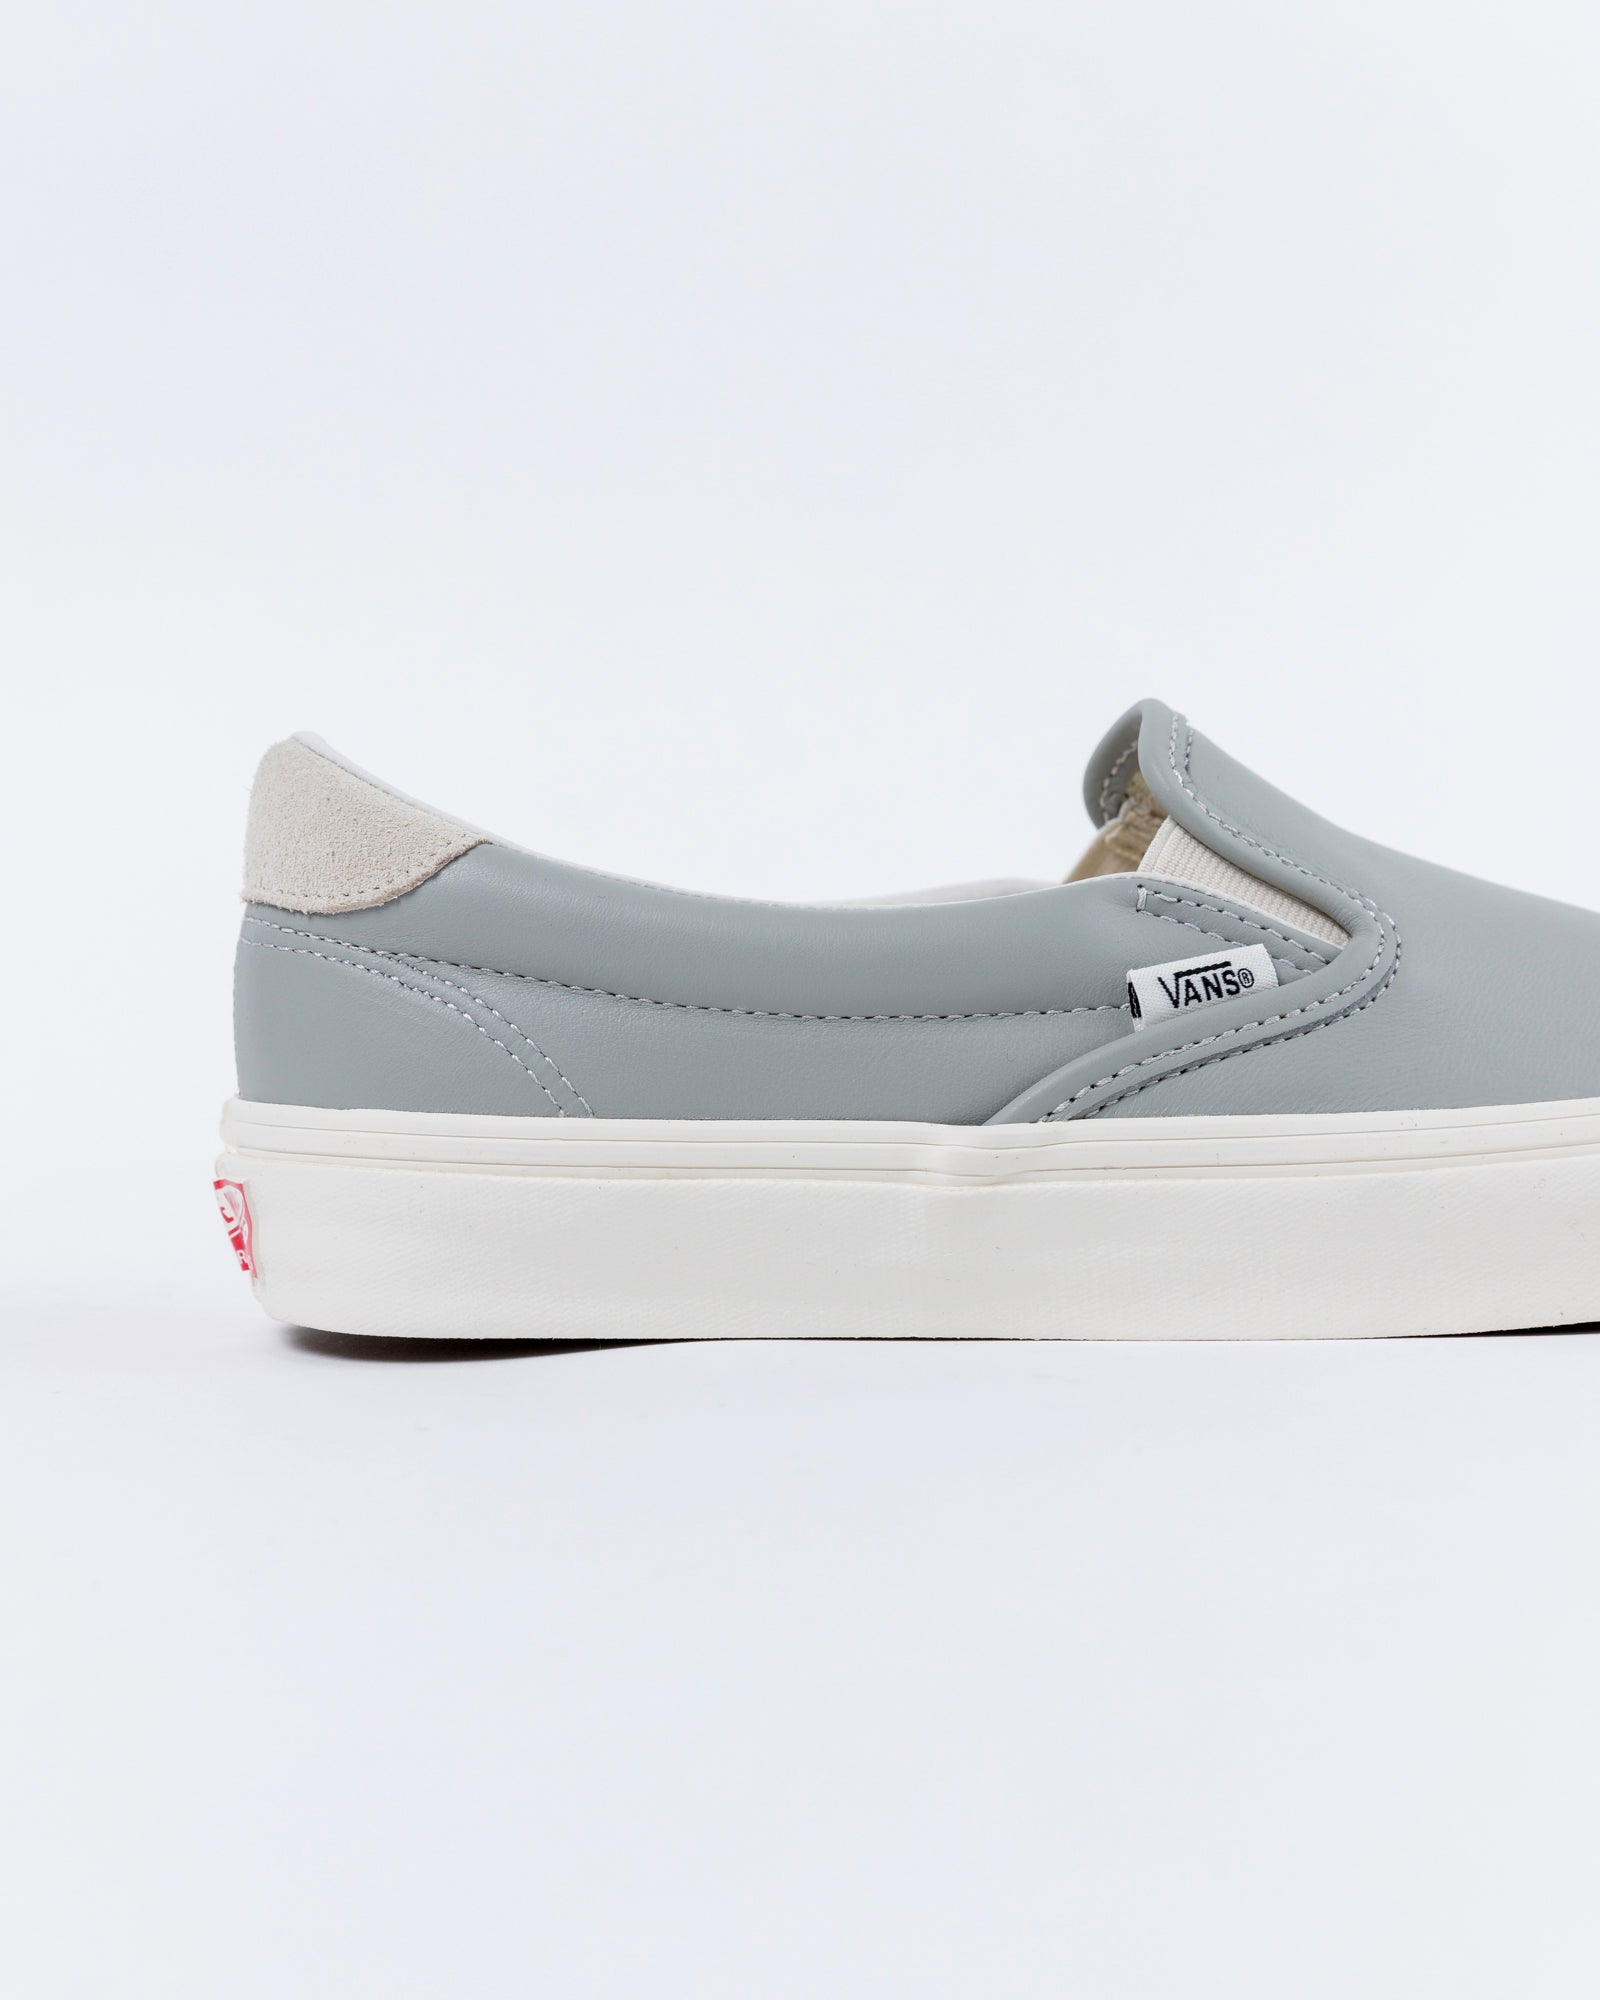 UA OG Slip-On 59 LX (Leather & Suede) in Gray